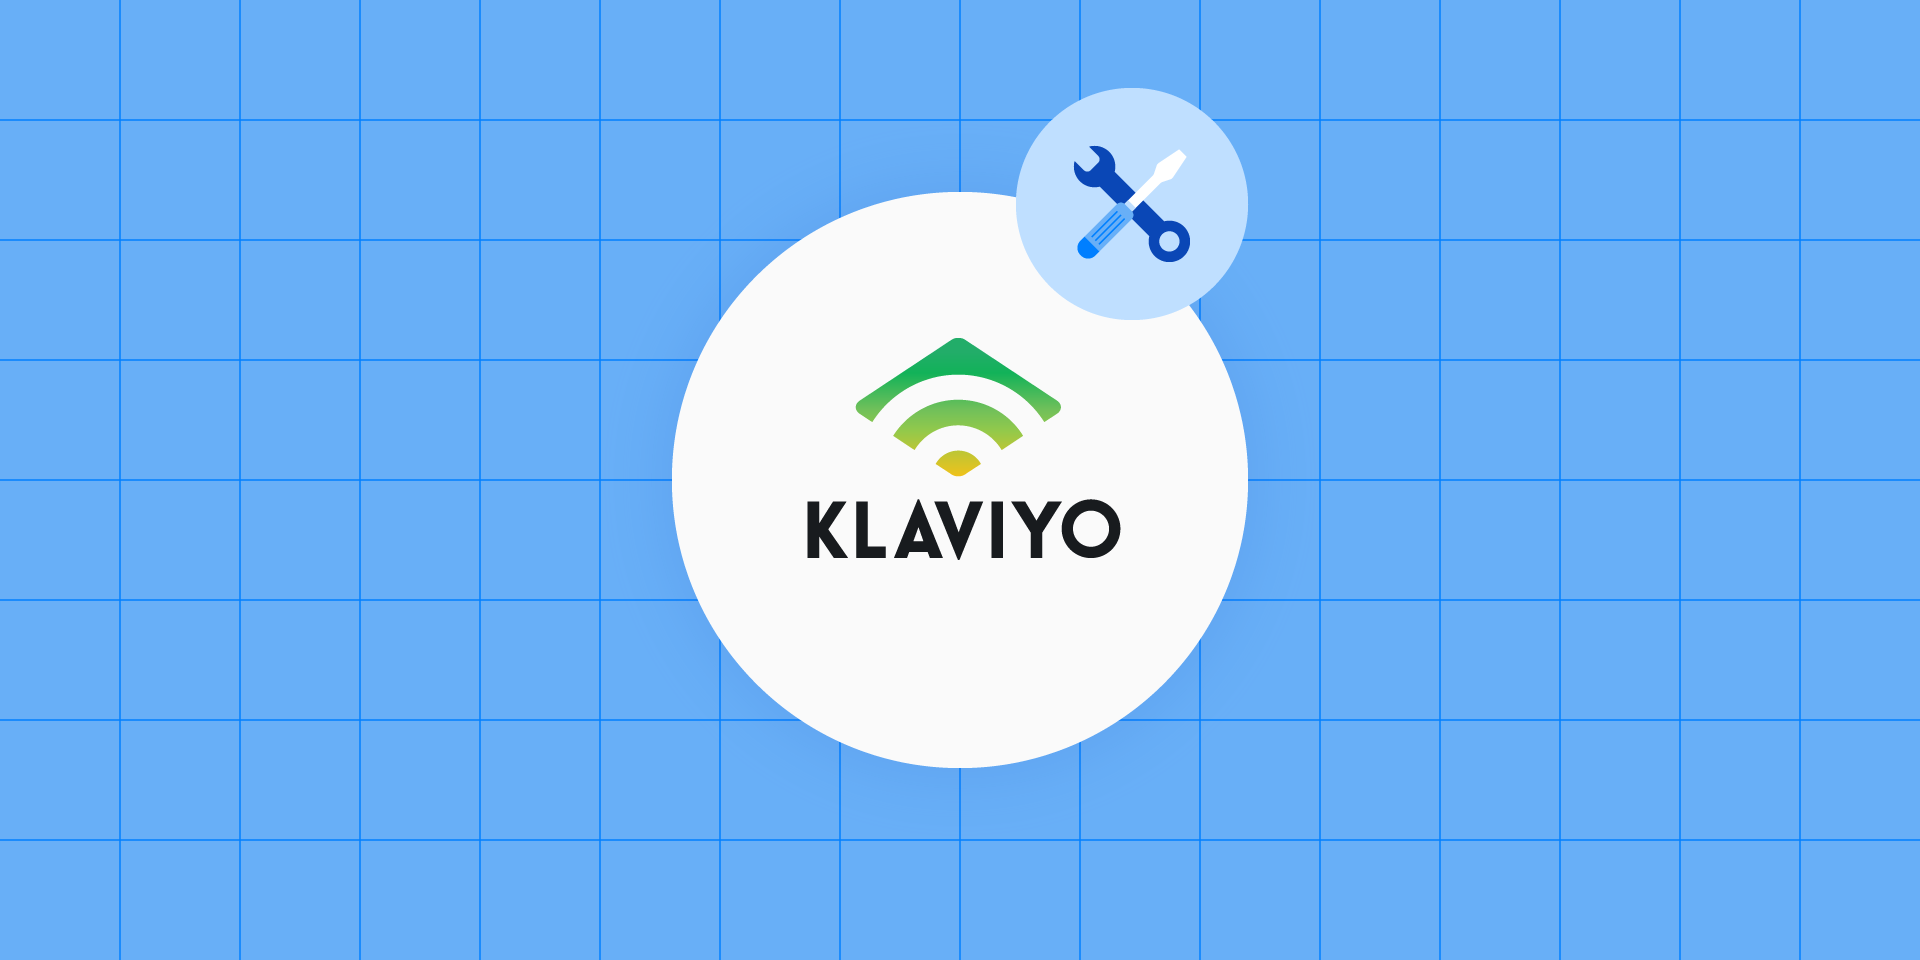 How Fivetran Built Its Klaviyo Connector